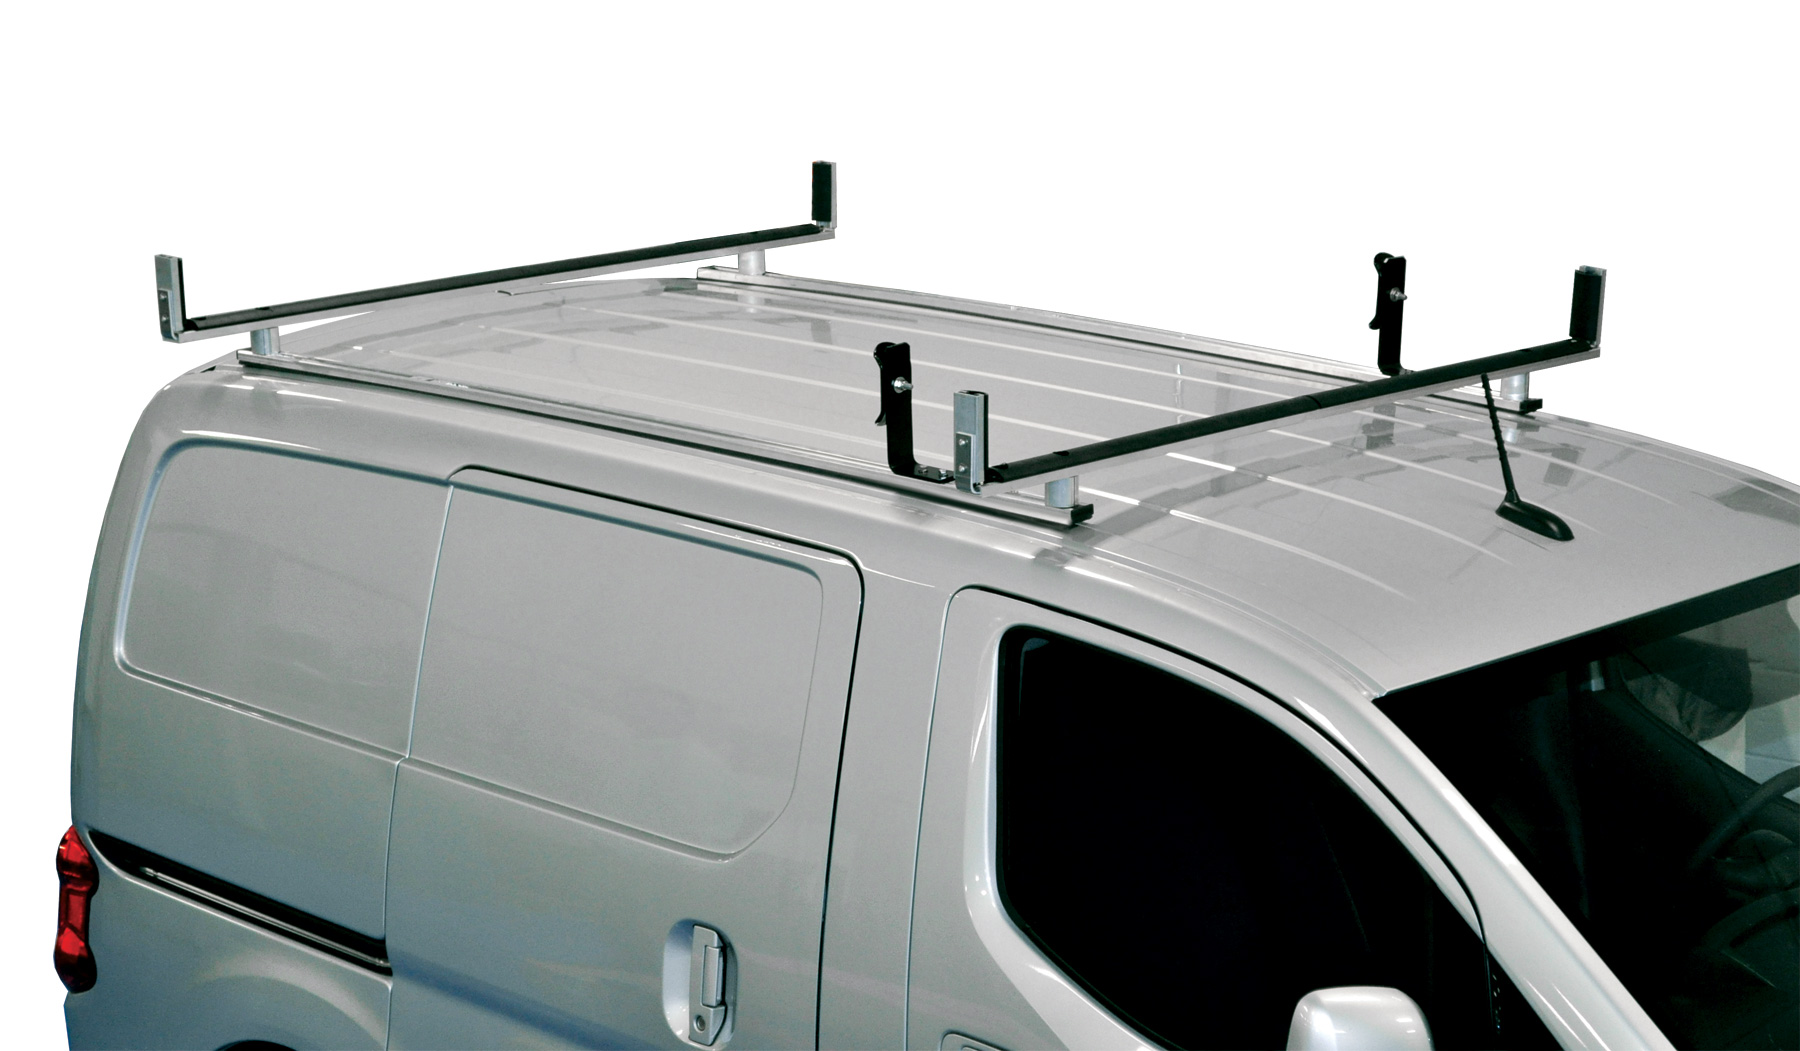 Utility rack package for nv200 for Commercial van interior accessories